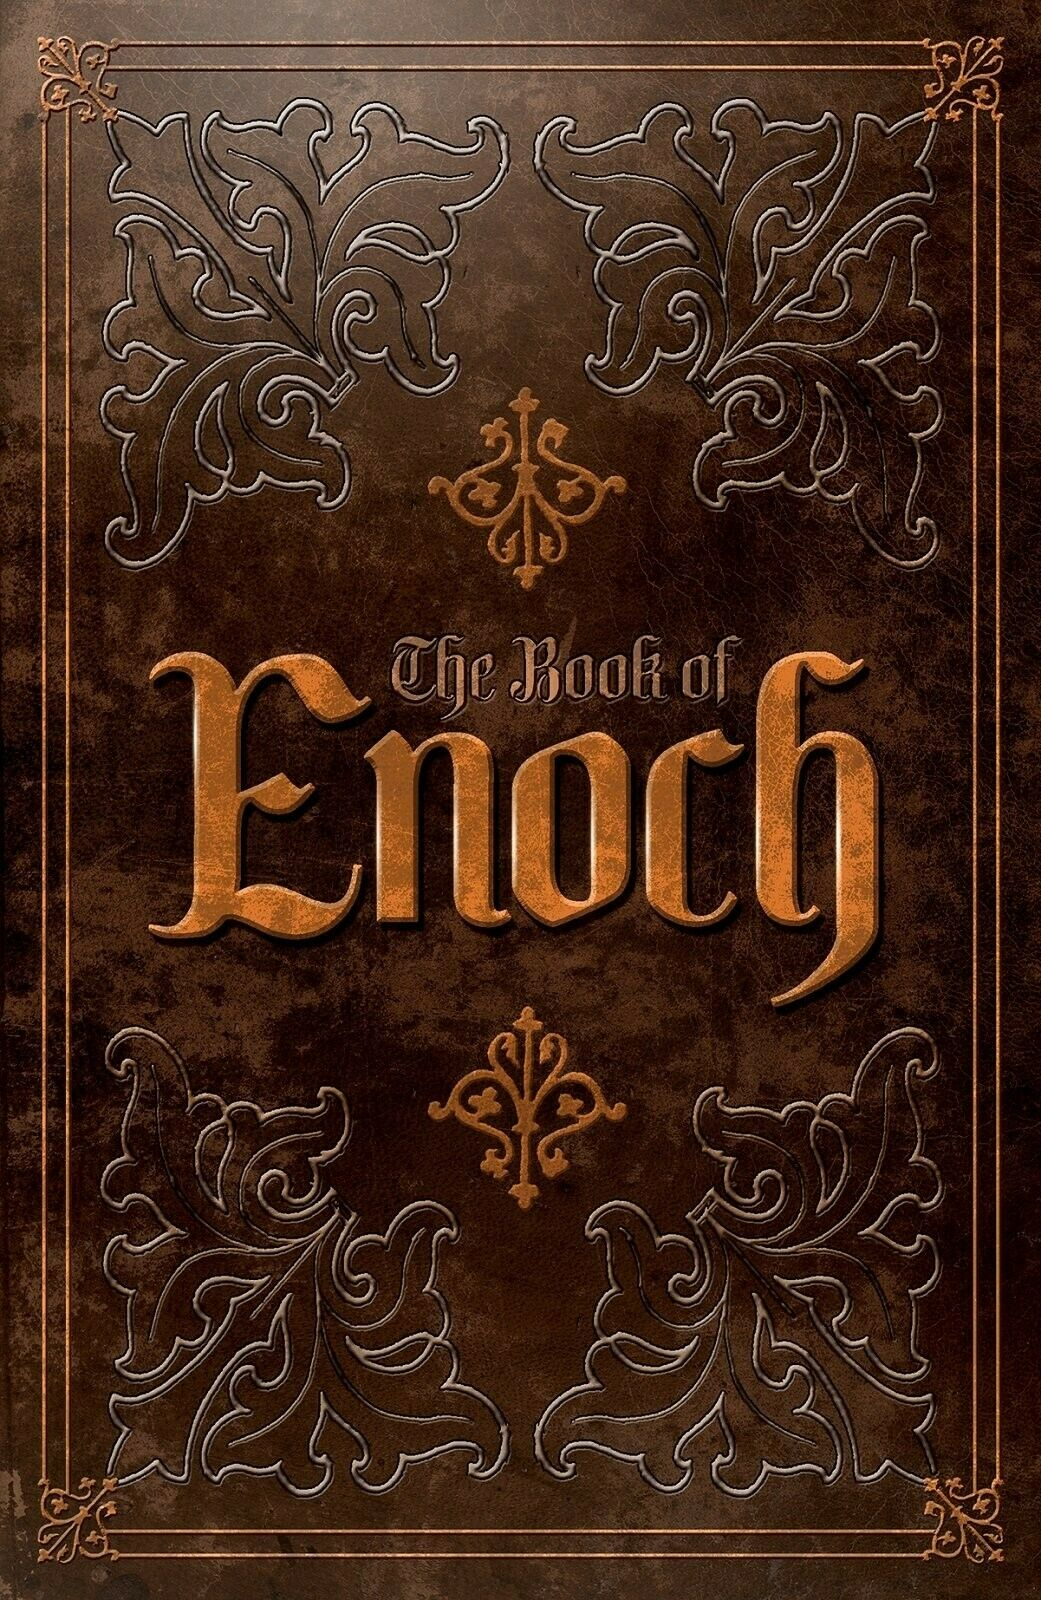 The E book of Enoch by Enoch Hardcover General History of